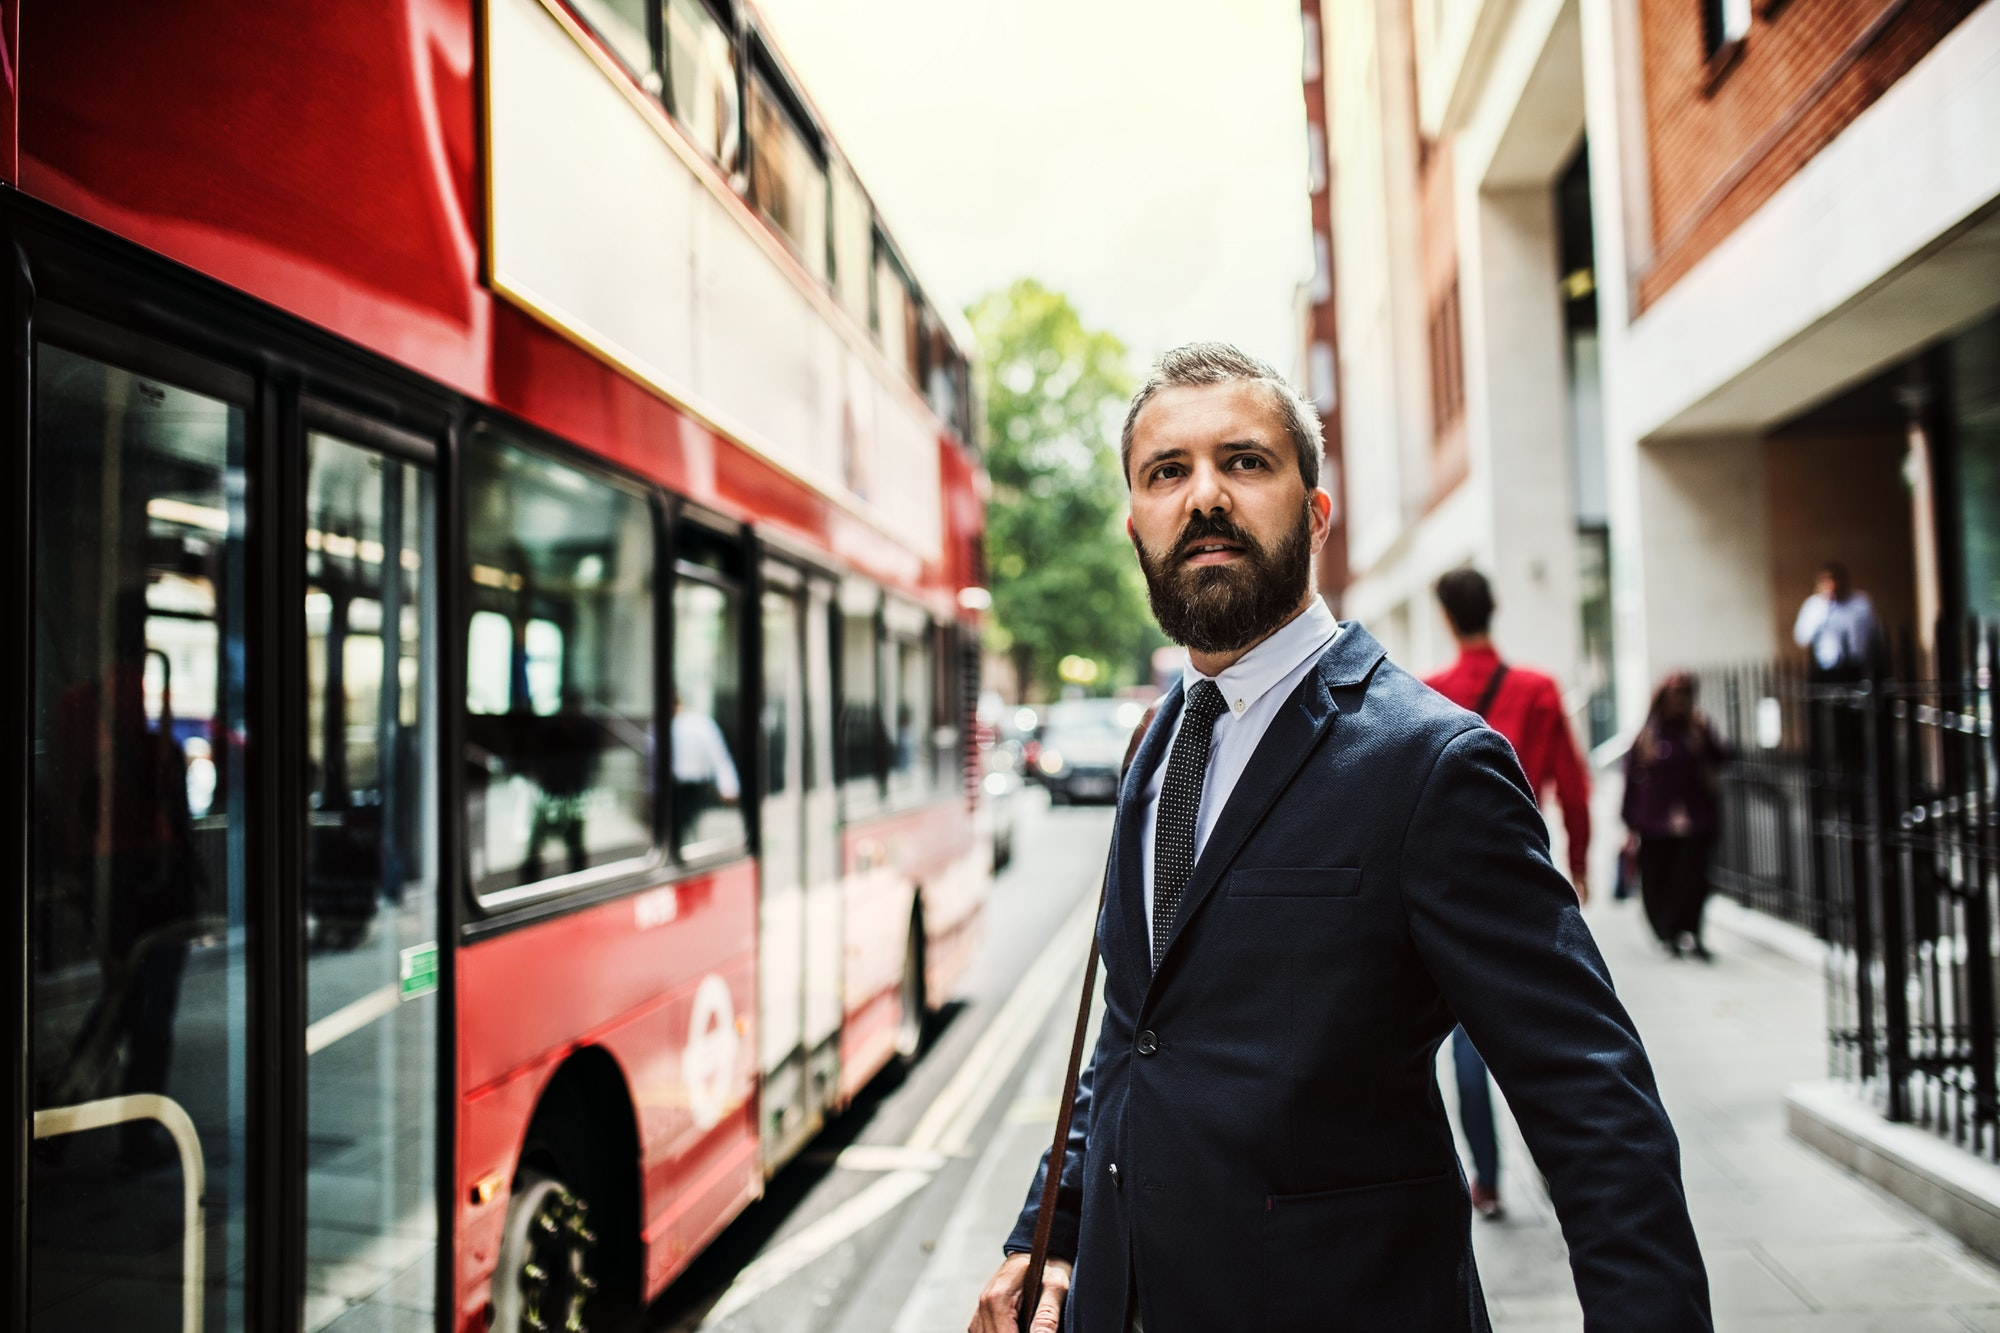 Hipster businessman standing on the street, waiting for the bus in London.